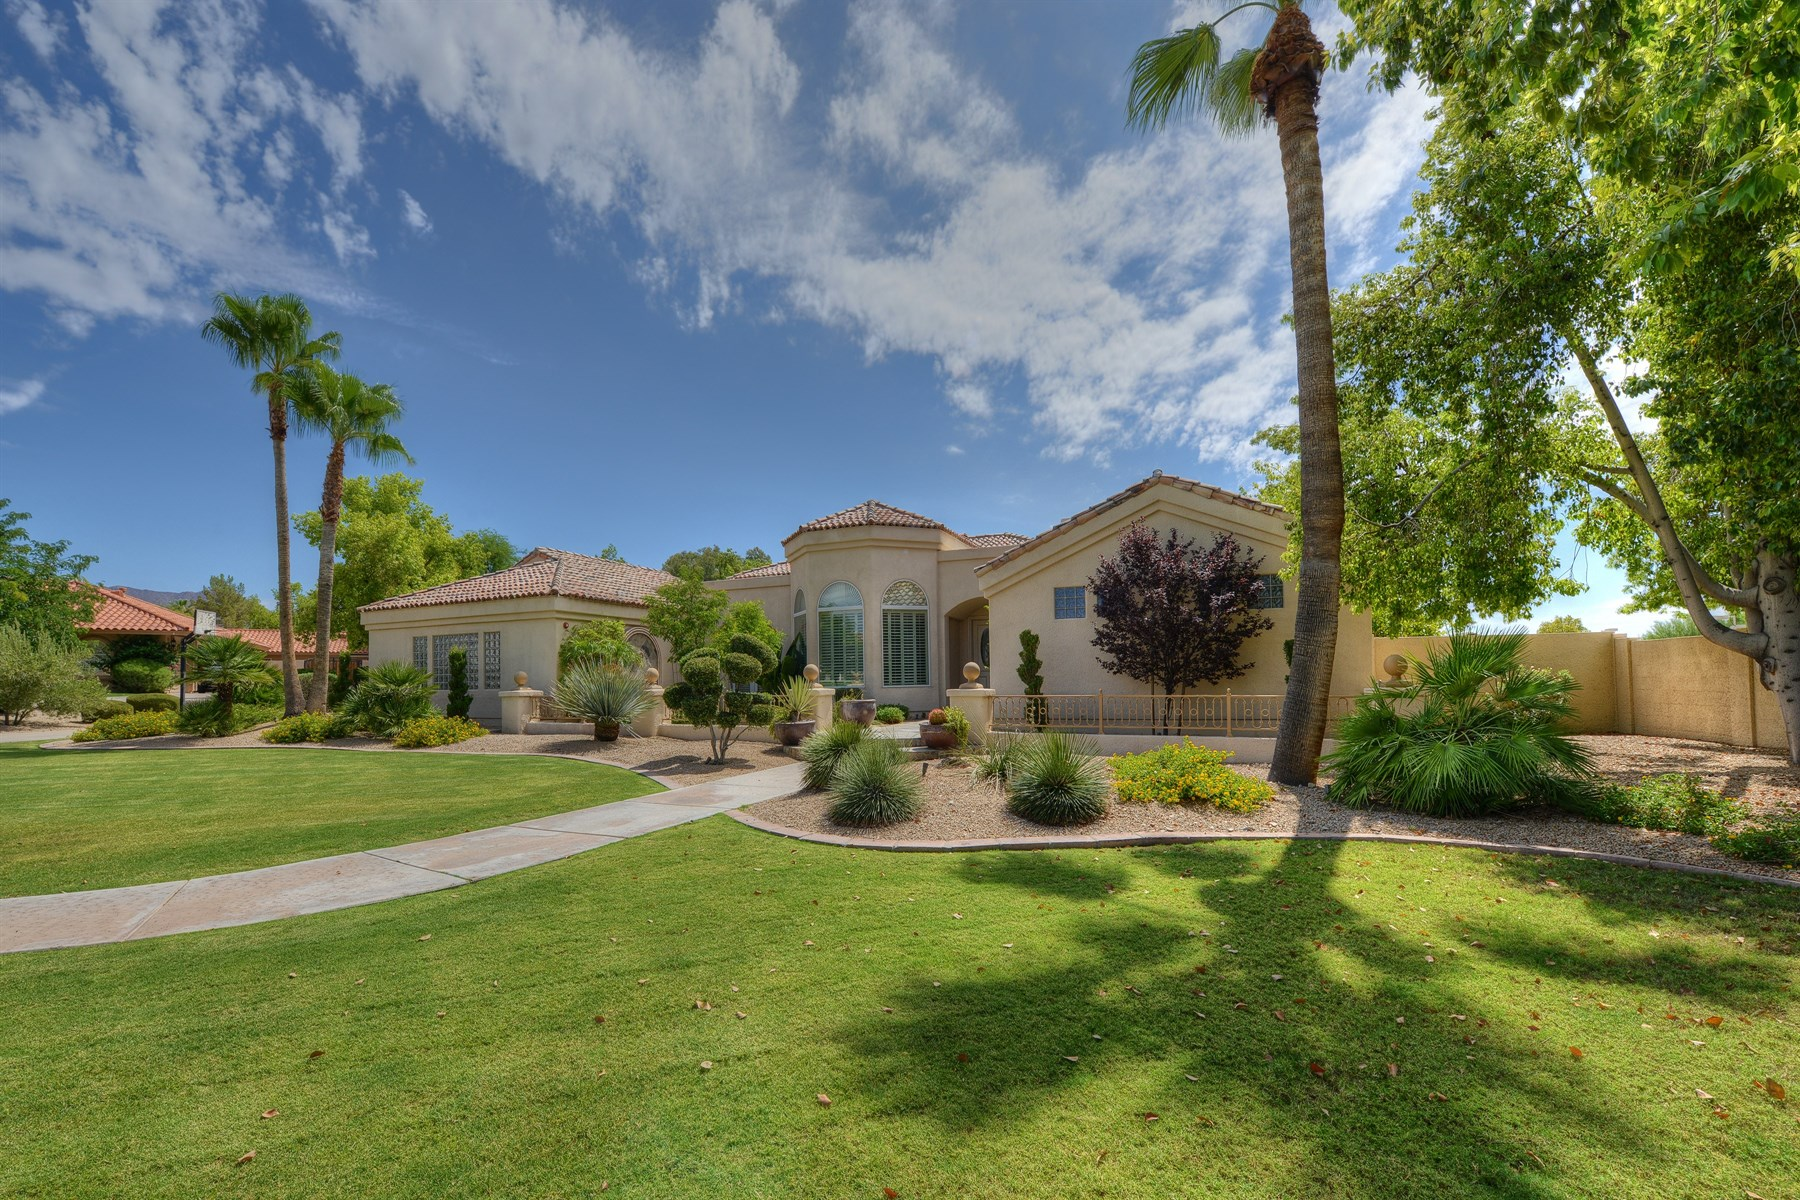 Villa per Vendita alle ore Gorgeous custom estate with four bedrooms and three and a half baths. 12121 N 104TH WAY Scottsdale, Arizona 85259 Stati Uniti